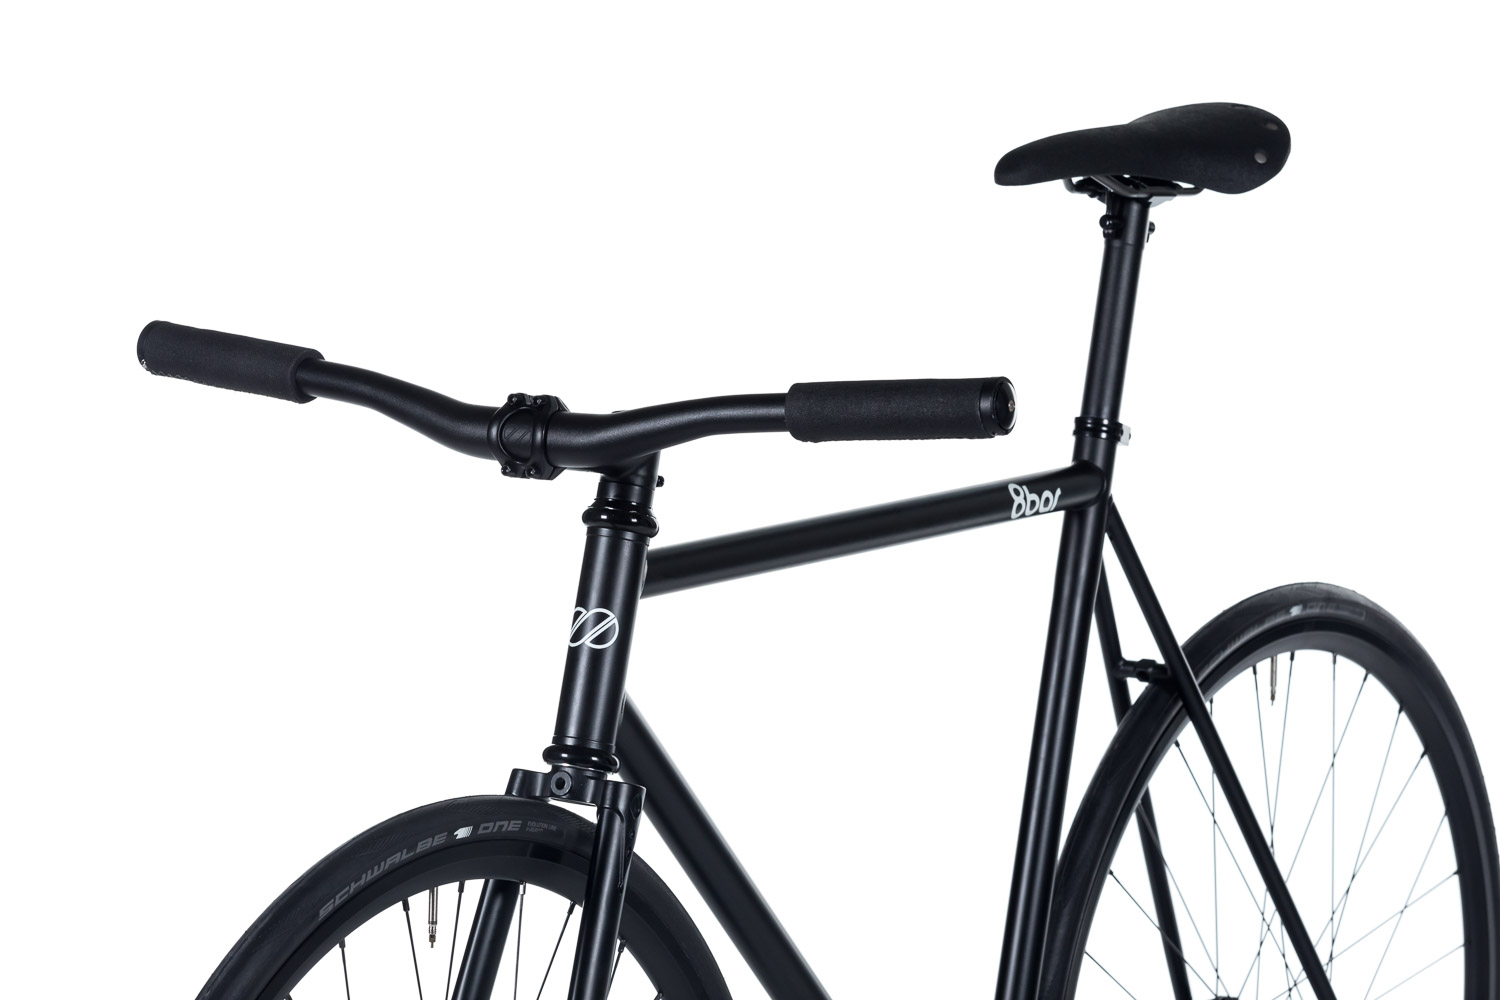 8bar-complete-bike-fhain-steel-pro-urban-riser-black-studio-fixed-gear-fixie-lr-2